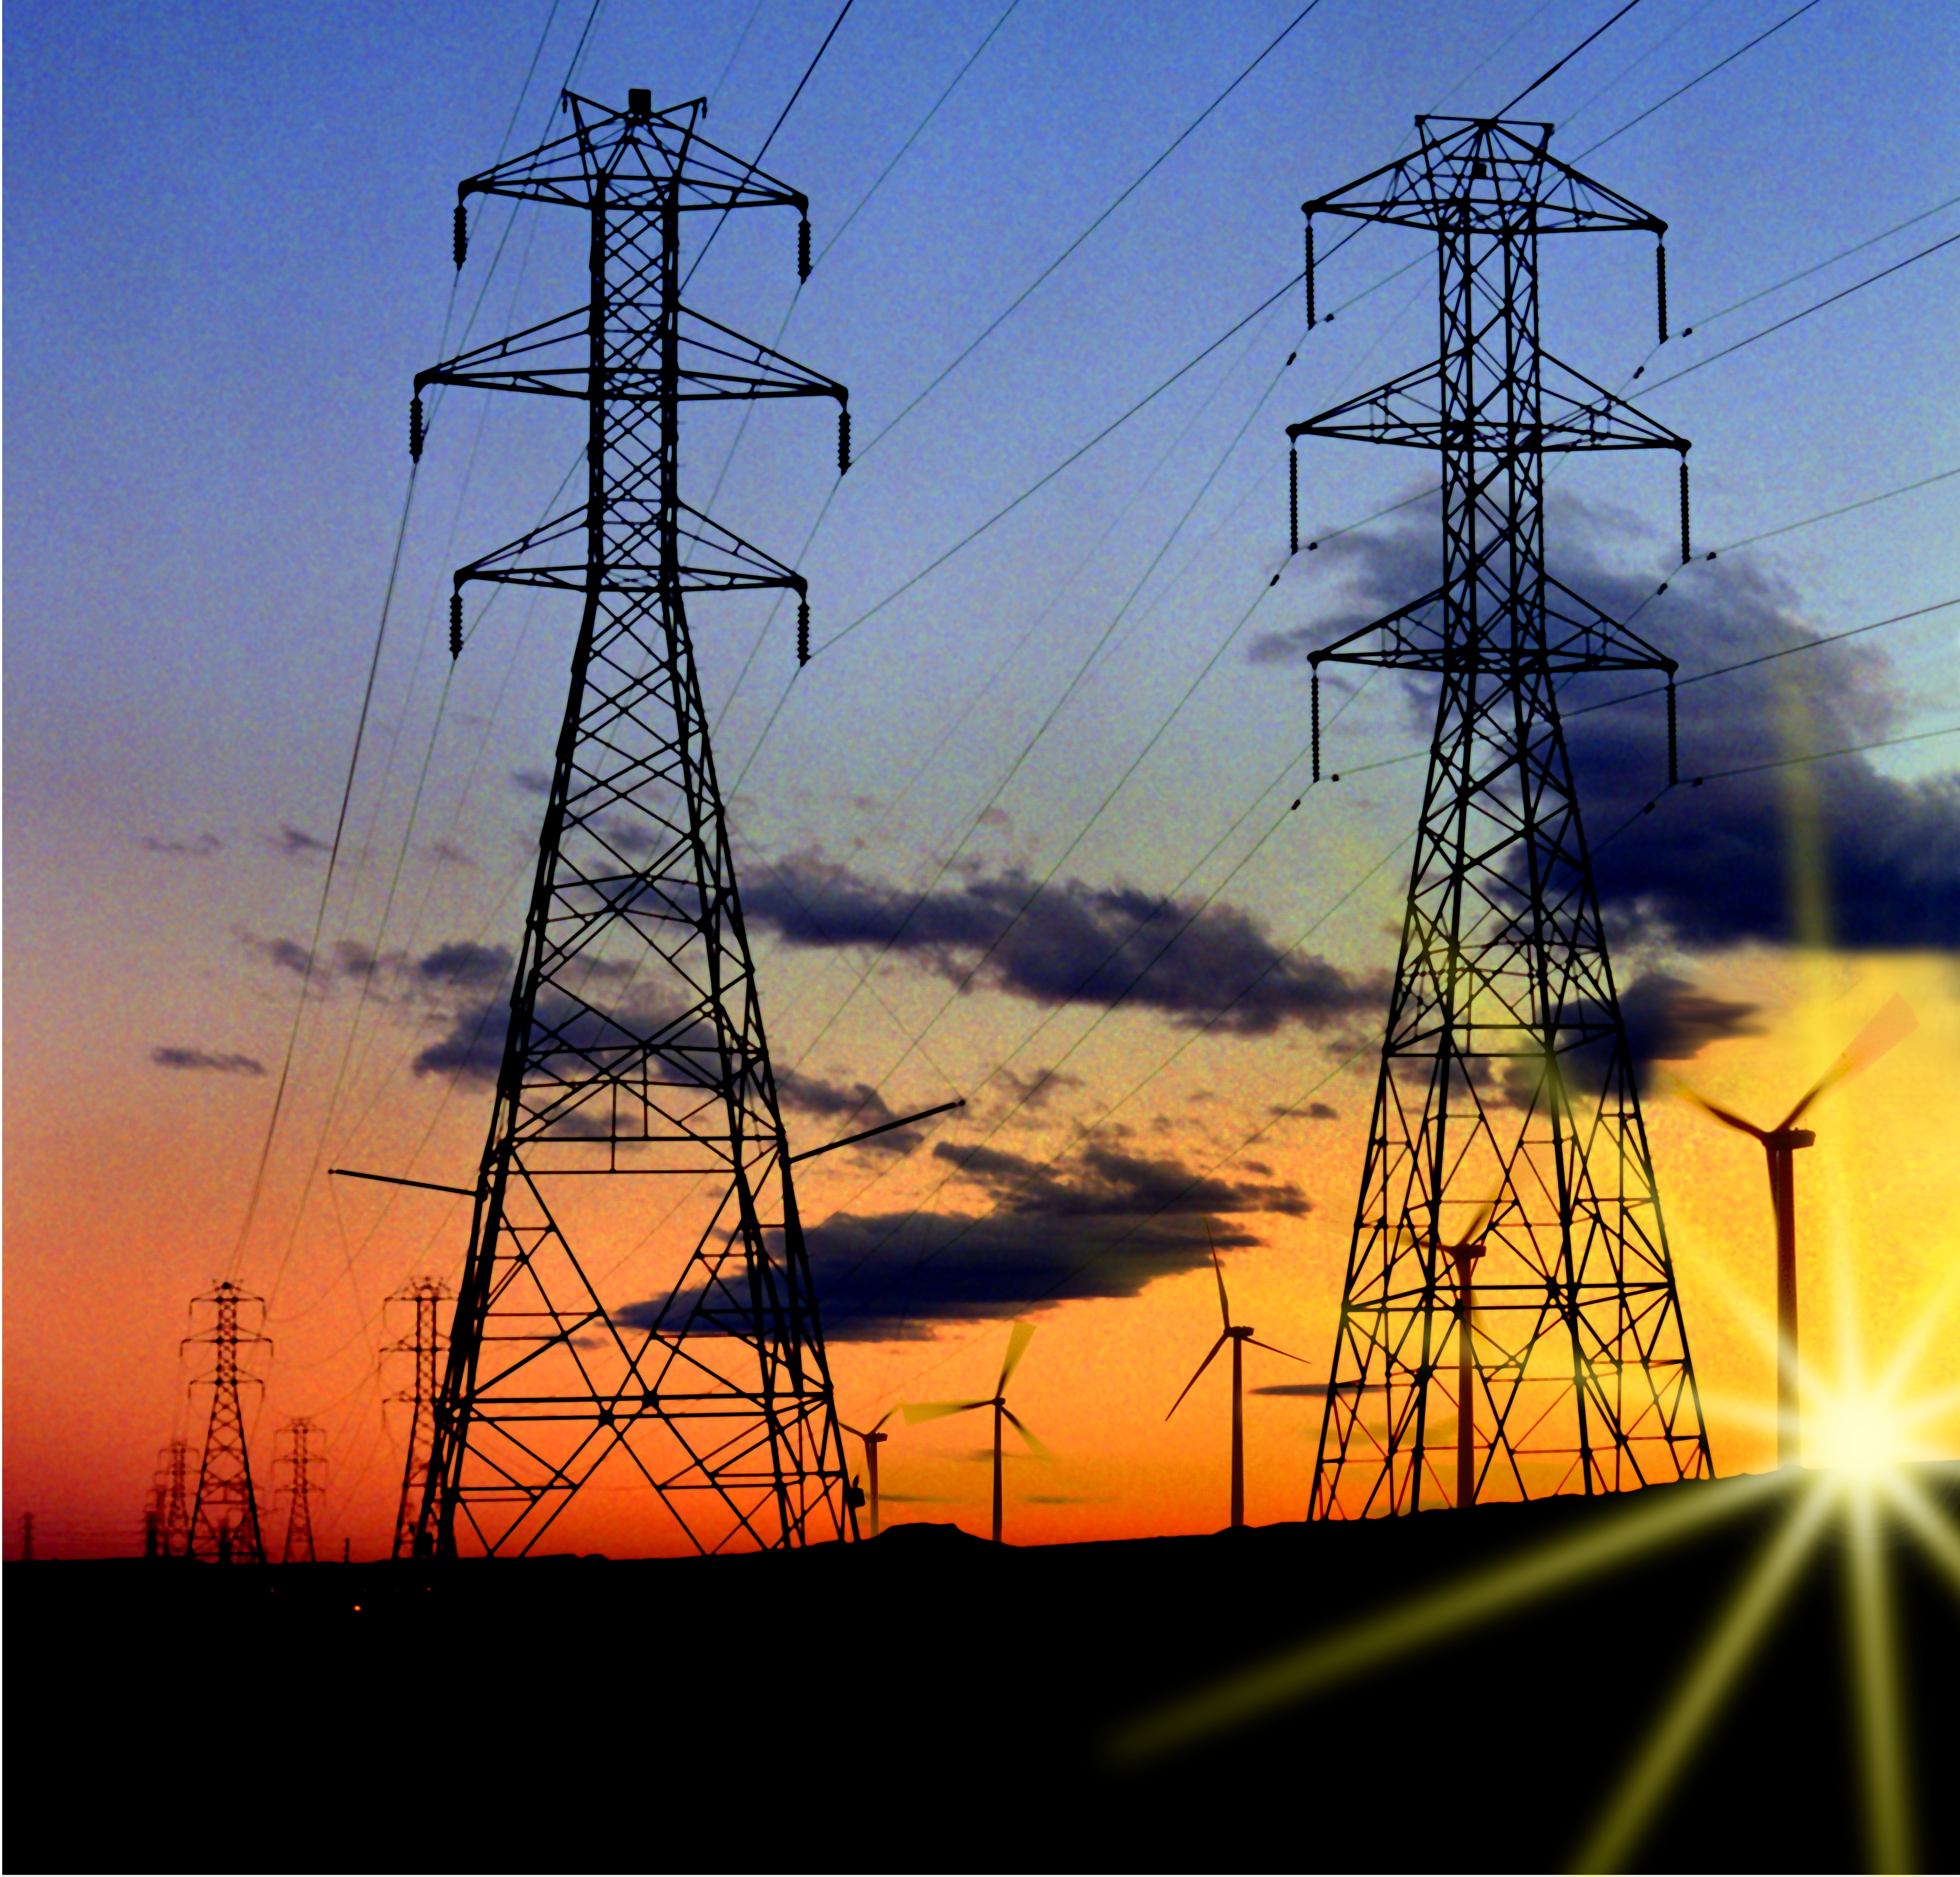 Photoshop art created from two NREL-Image Gallery  photos of sunset view of electrical power towers combined with wind machines.  (Photo Illustration by Raymond David / NREL)